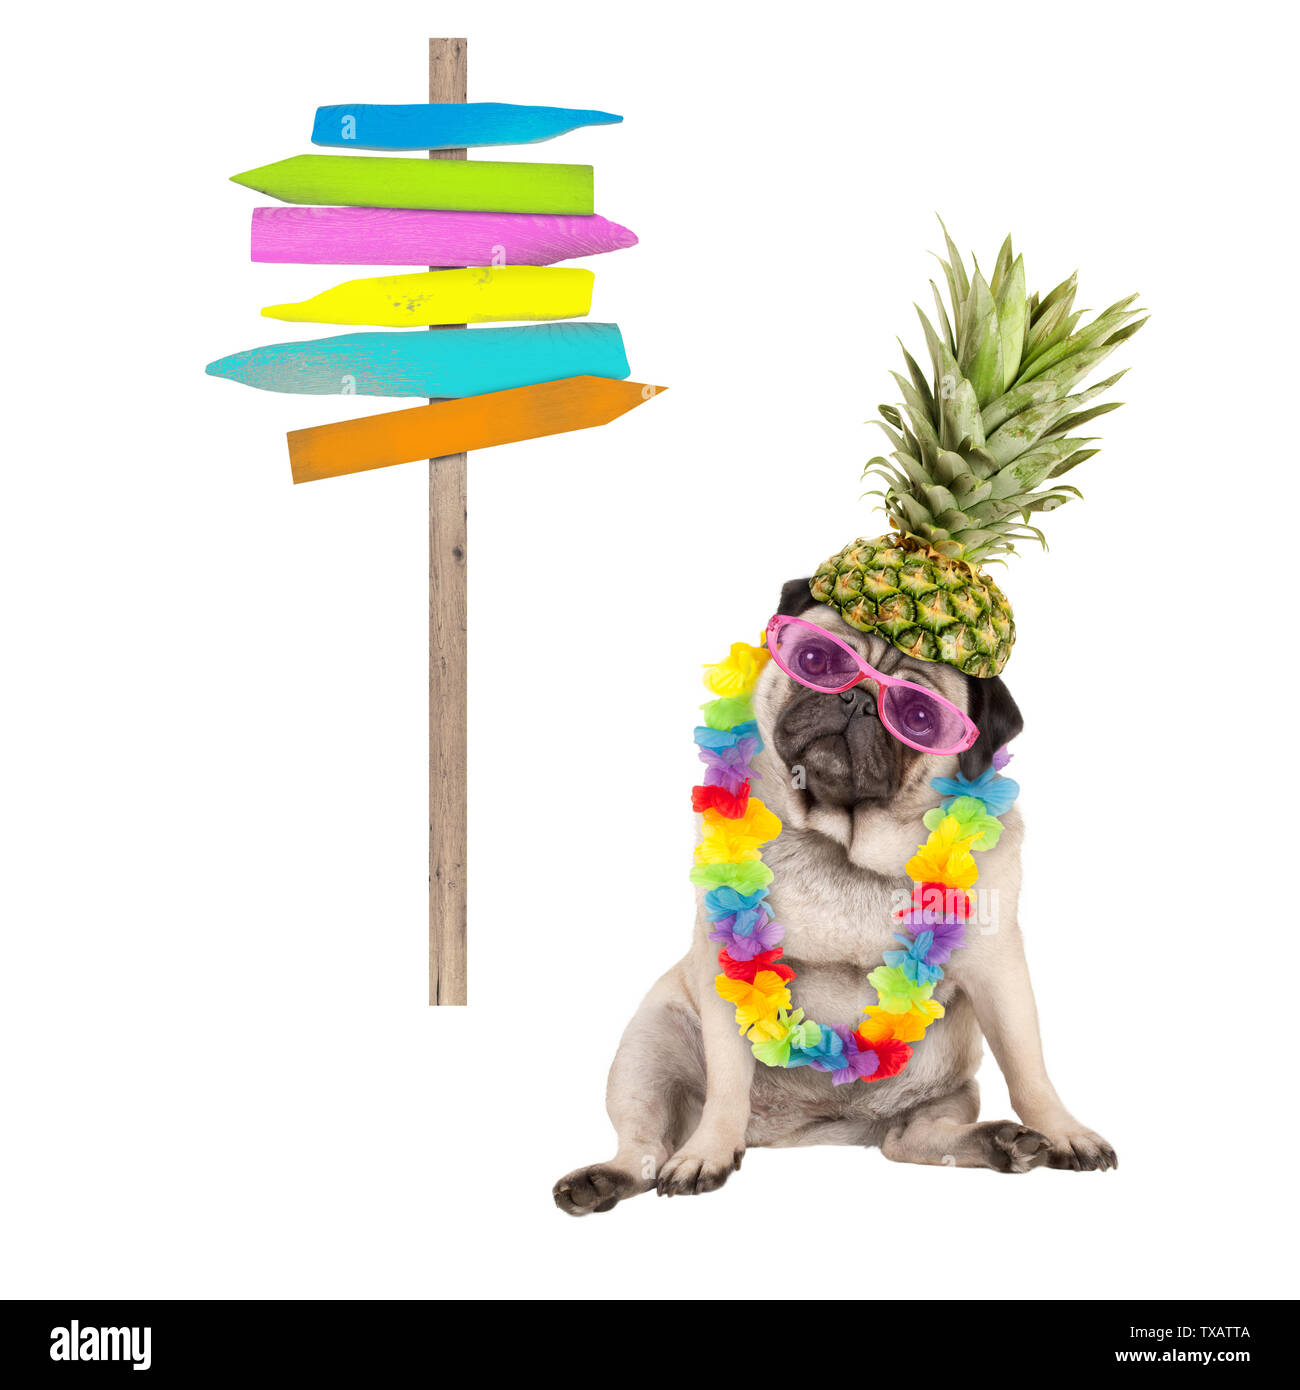 summer pug dog sitting down with colorful hawaiian flower garland, pink sunglasses and pineapple hat, next to wooden beach sign post on pole, isolated Stock Photo